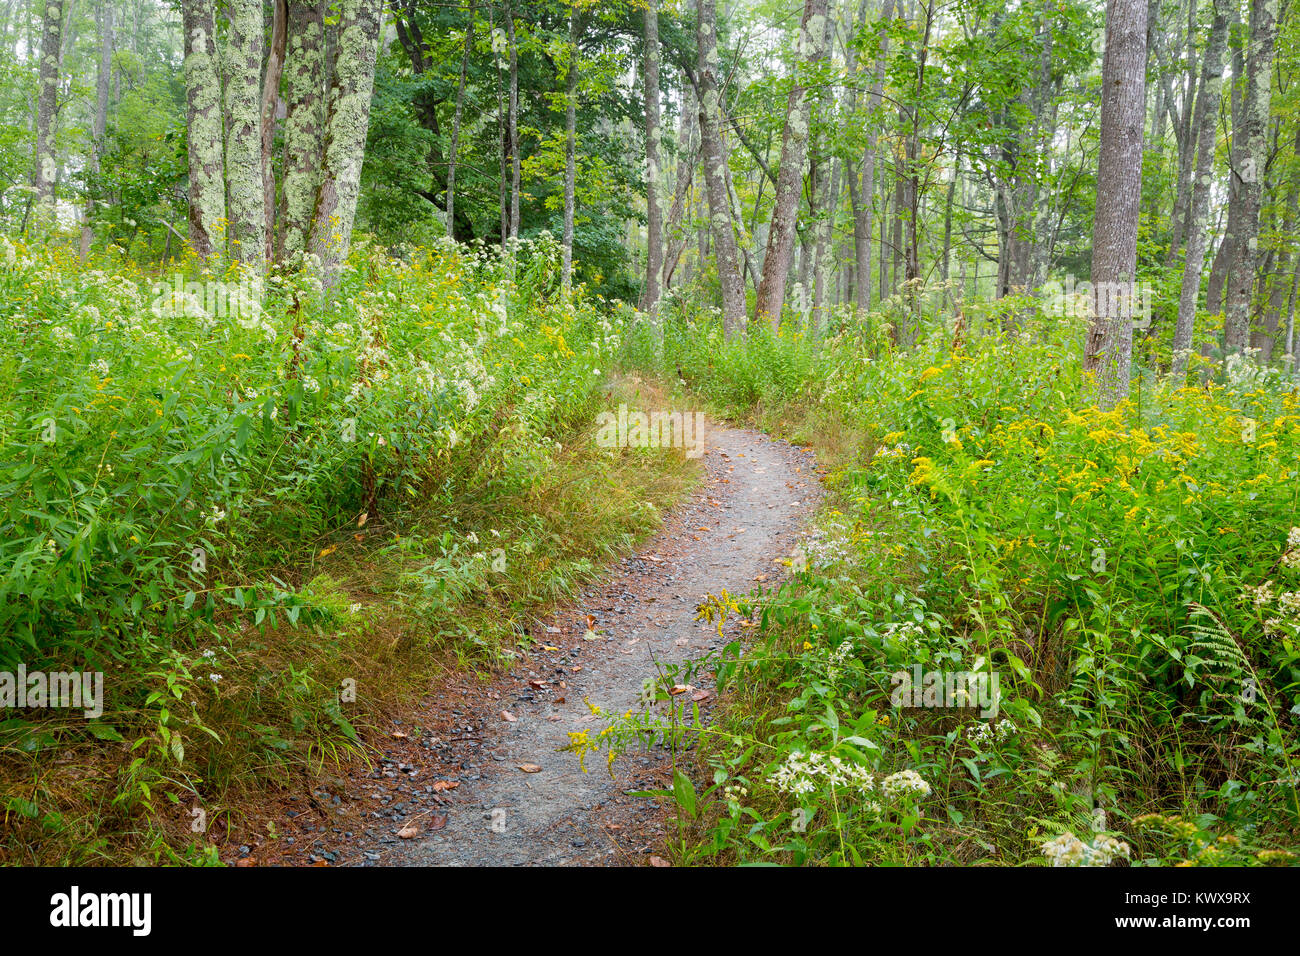 The Otter Cove Trail winding through a thick forest on Mount Desert Island. Acadia National Park, Maine Stock Photo